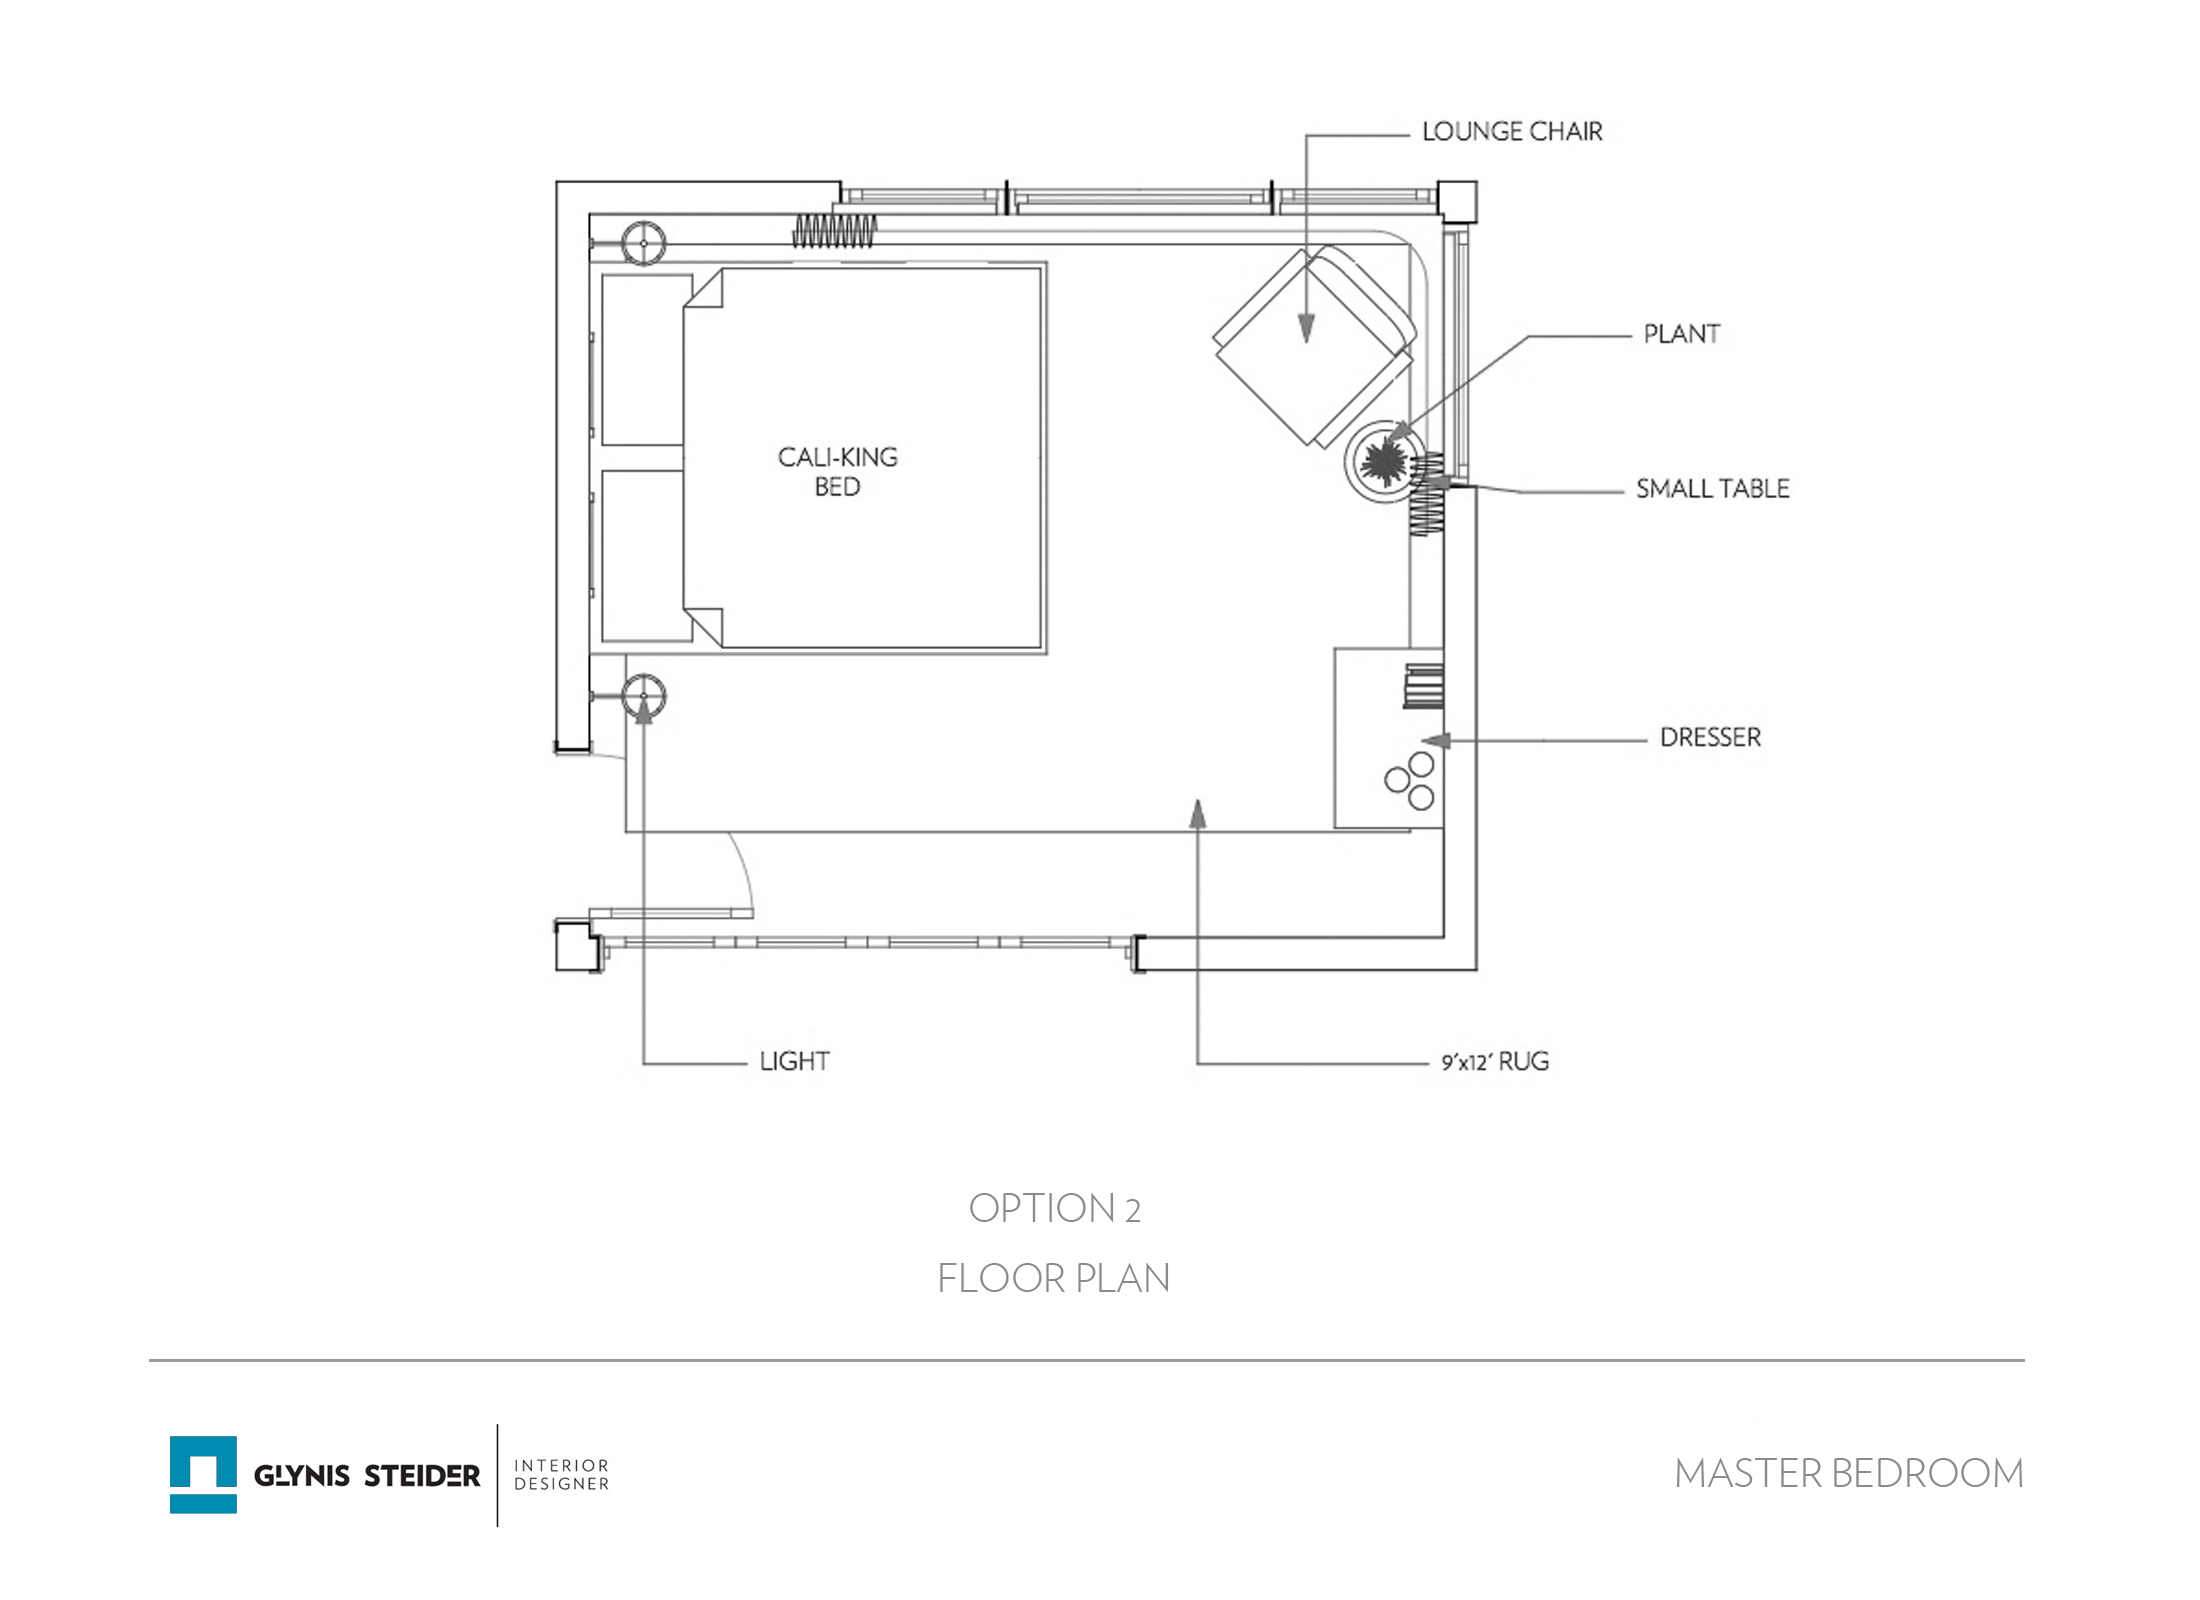 floor plan _template copy copy.jpg